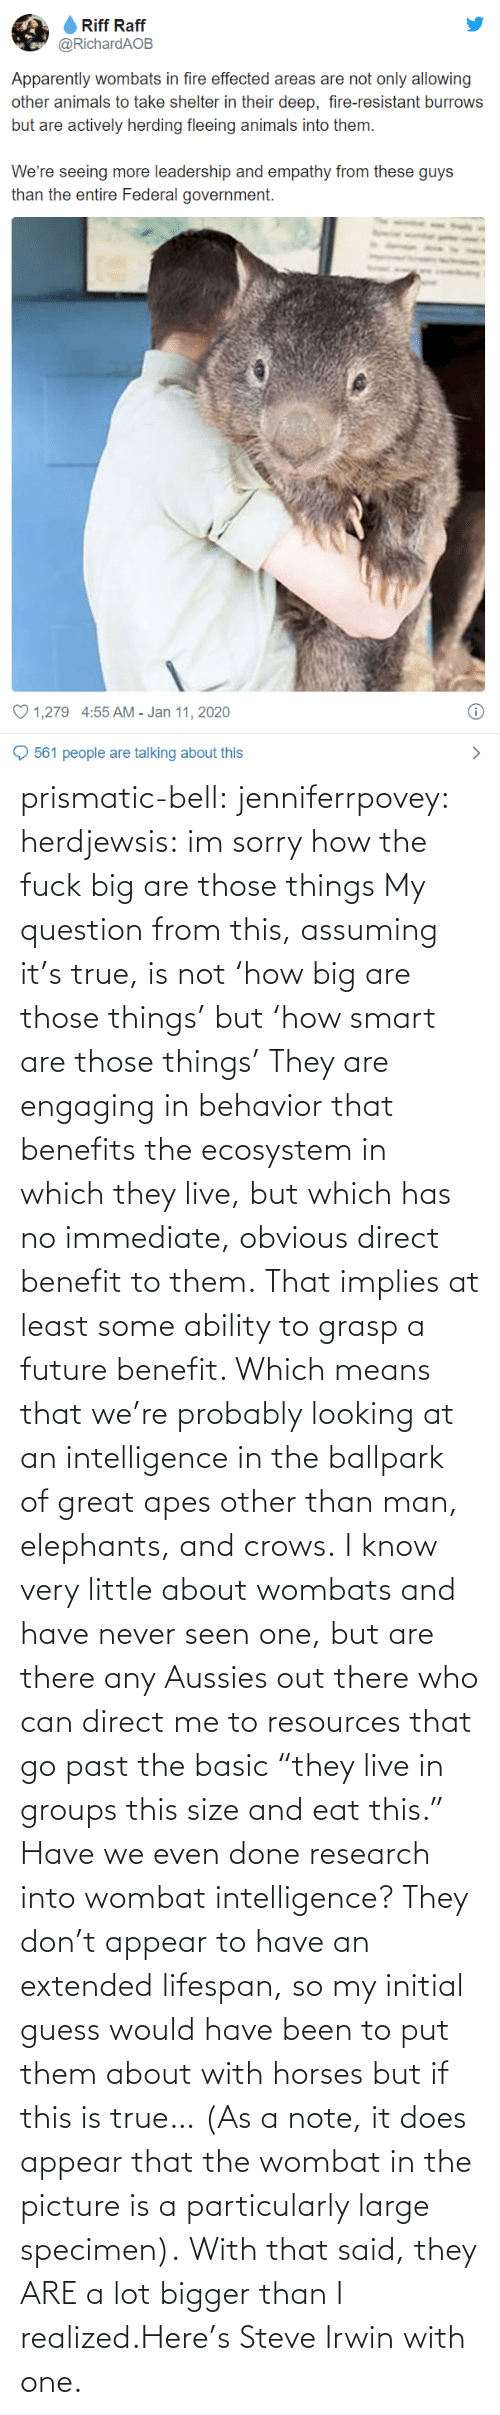 "jpg: prismatic-bell:  jenniferrpovey: herdjewsis: im sorry how the fuck big are those things My question from this, assuming it's true, is not 'how big are those things' but 'how smart are those things' They are engaging in behavior that benefits the ecosystem in which they live, but which has no immediate, obvious direct benefit to them. That implies at least some ability to grasp a future benefit. Which means that we're probably looking at an intelligence in the ballpark of great apes other than man, elephants, and crows. I know very little about wombats and have never seen one, but are there any Aussies out there who can direct me to resources that go past the basic ""they live in groups this size and eat this."" Have we even done research into wombat intelligence? They don't appear to have an extended lifespan, so my initial guess would have been to put them about with horses but if this is true… (As a note, it does appear that the wombat in the picture is a particularly large specimen).  With that said, they ARE a lot bigger than I realized.Here's Steve Irwin with one."